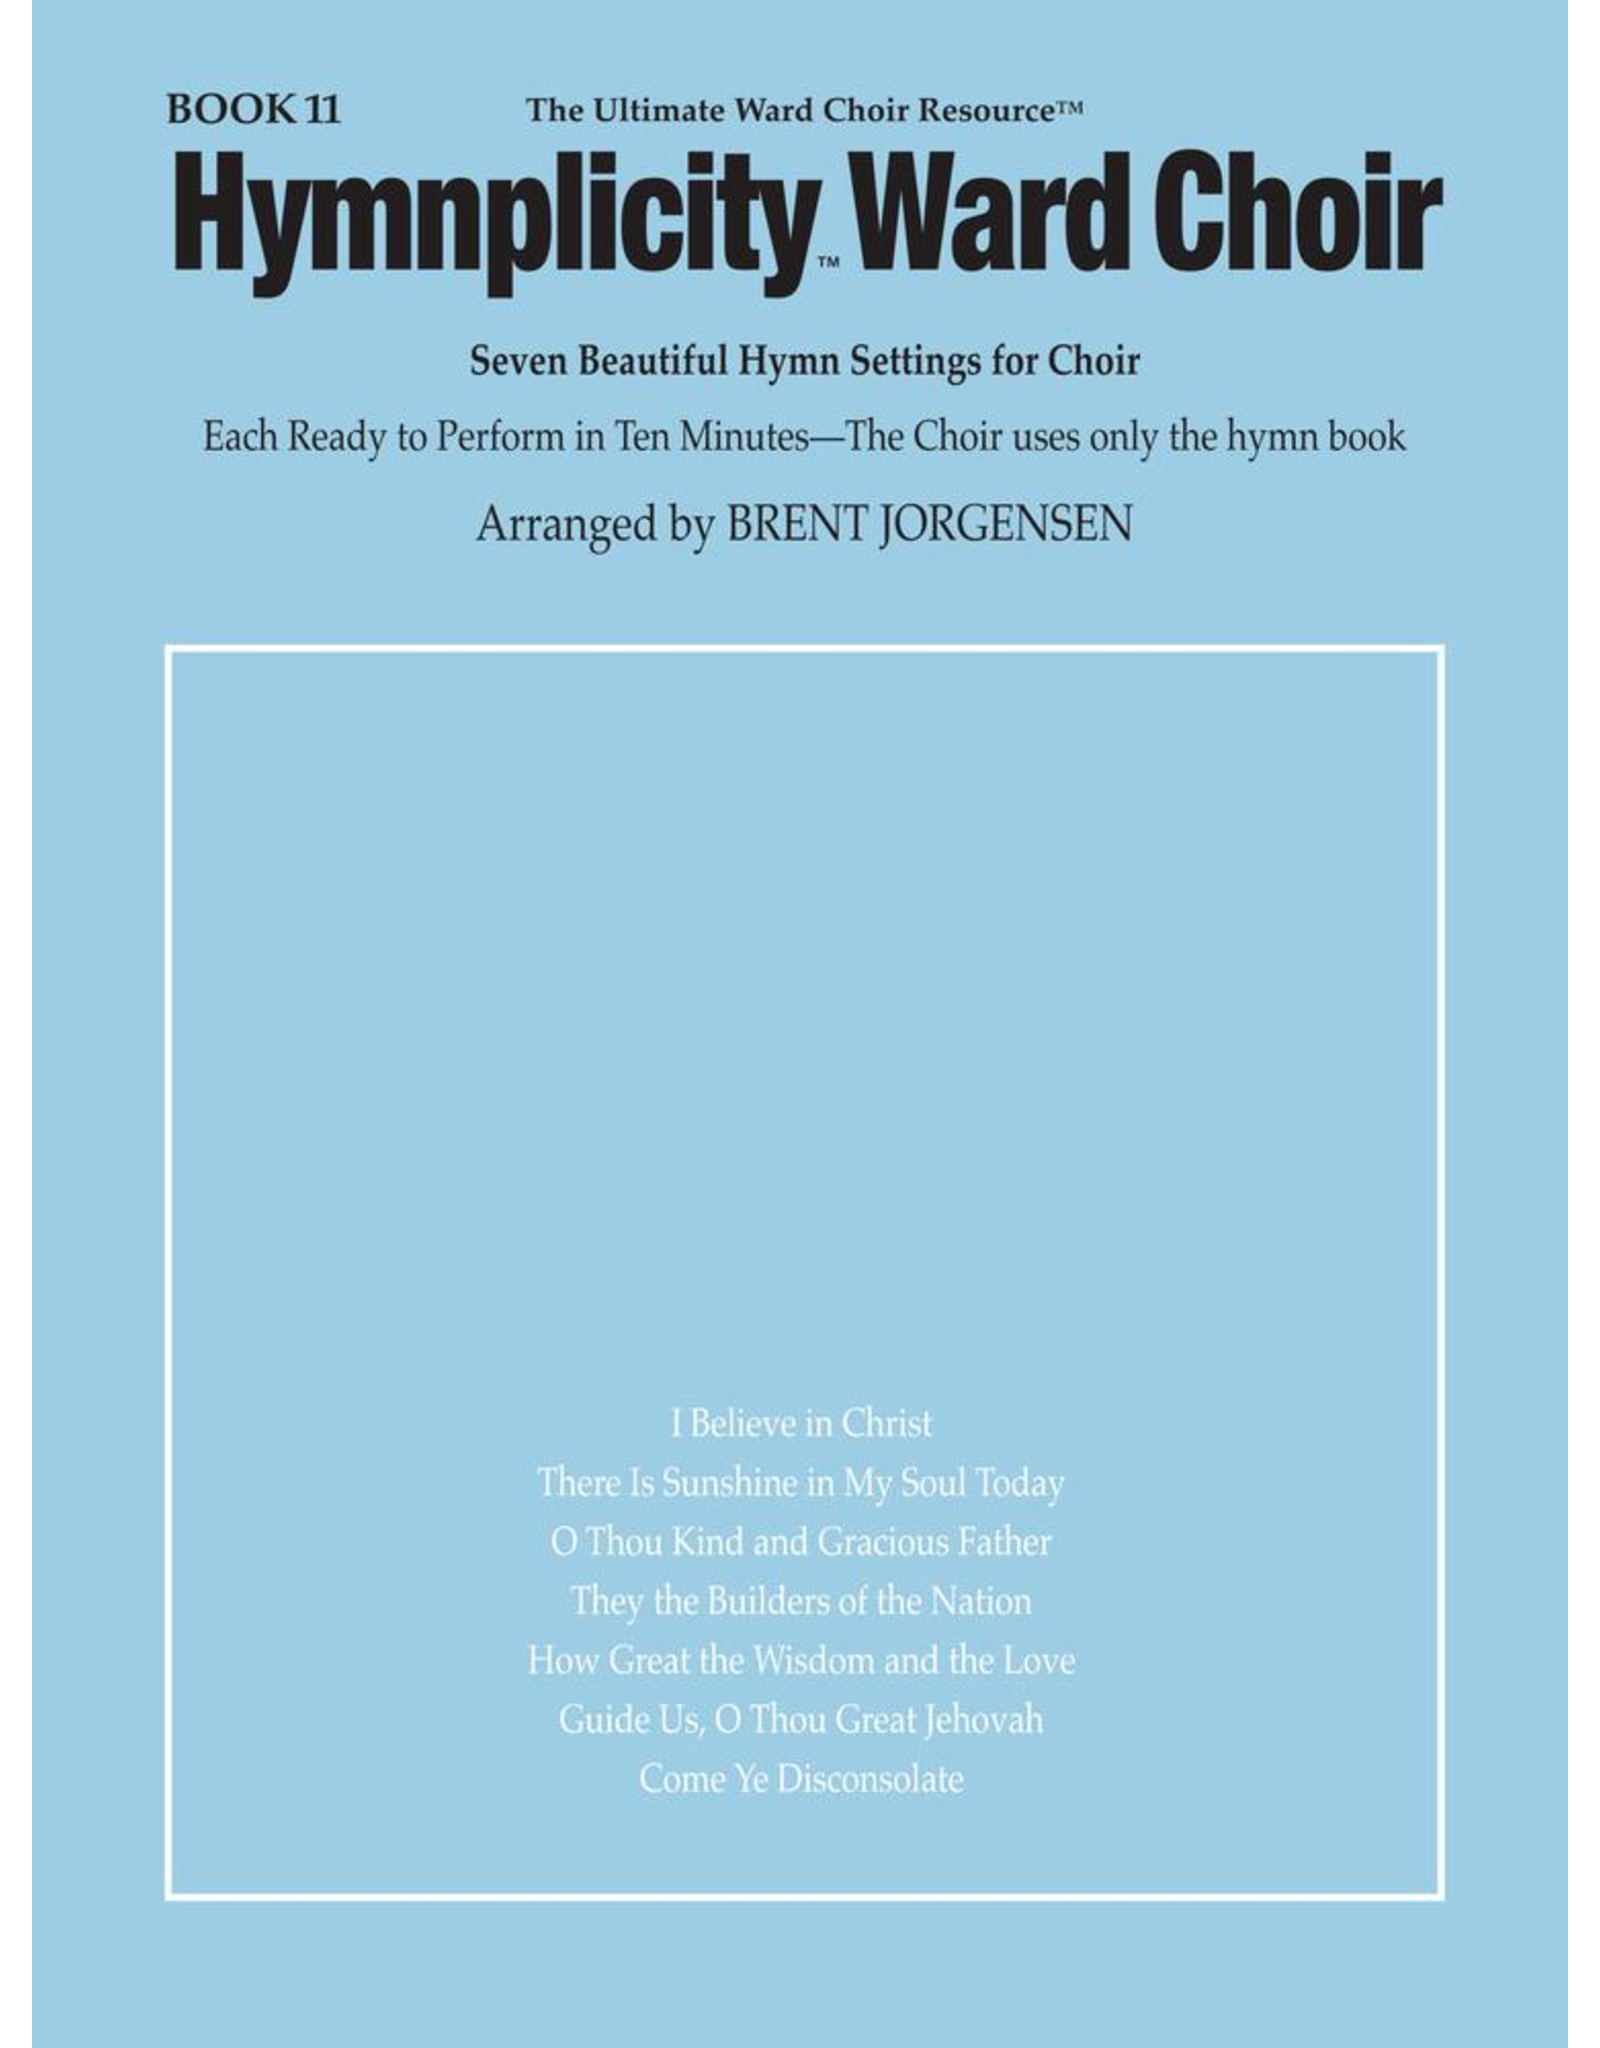 Jackman Music Hymnplicity Ward Choir Book 11